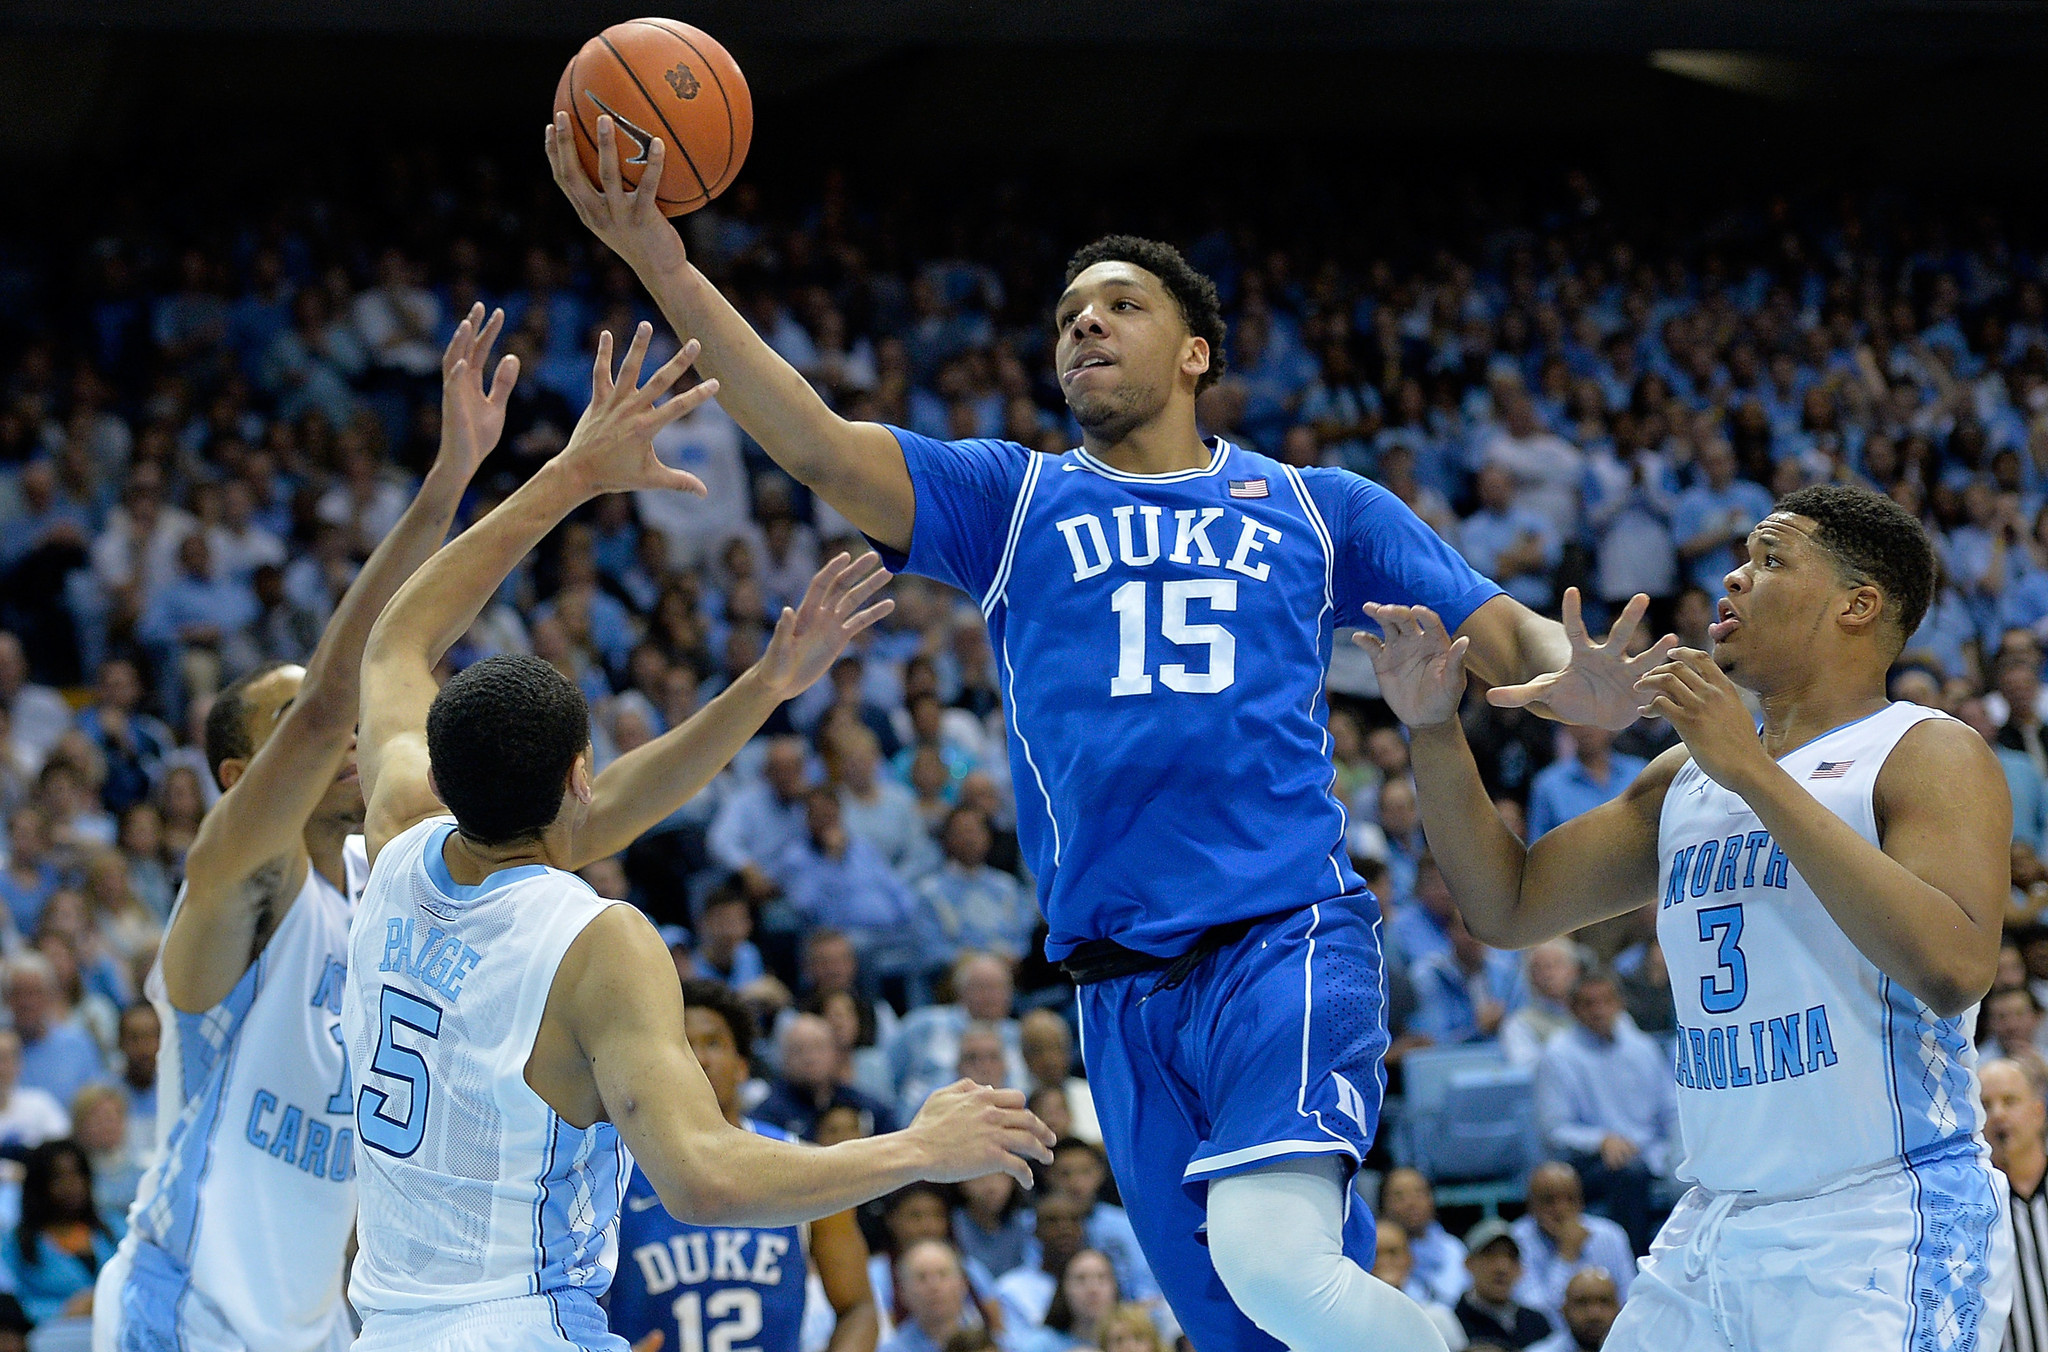 Duke's Jahlil Okafor picked as ACC player, rookie of year